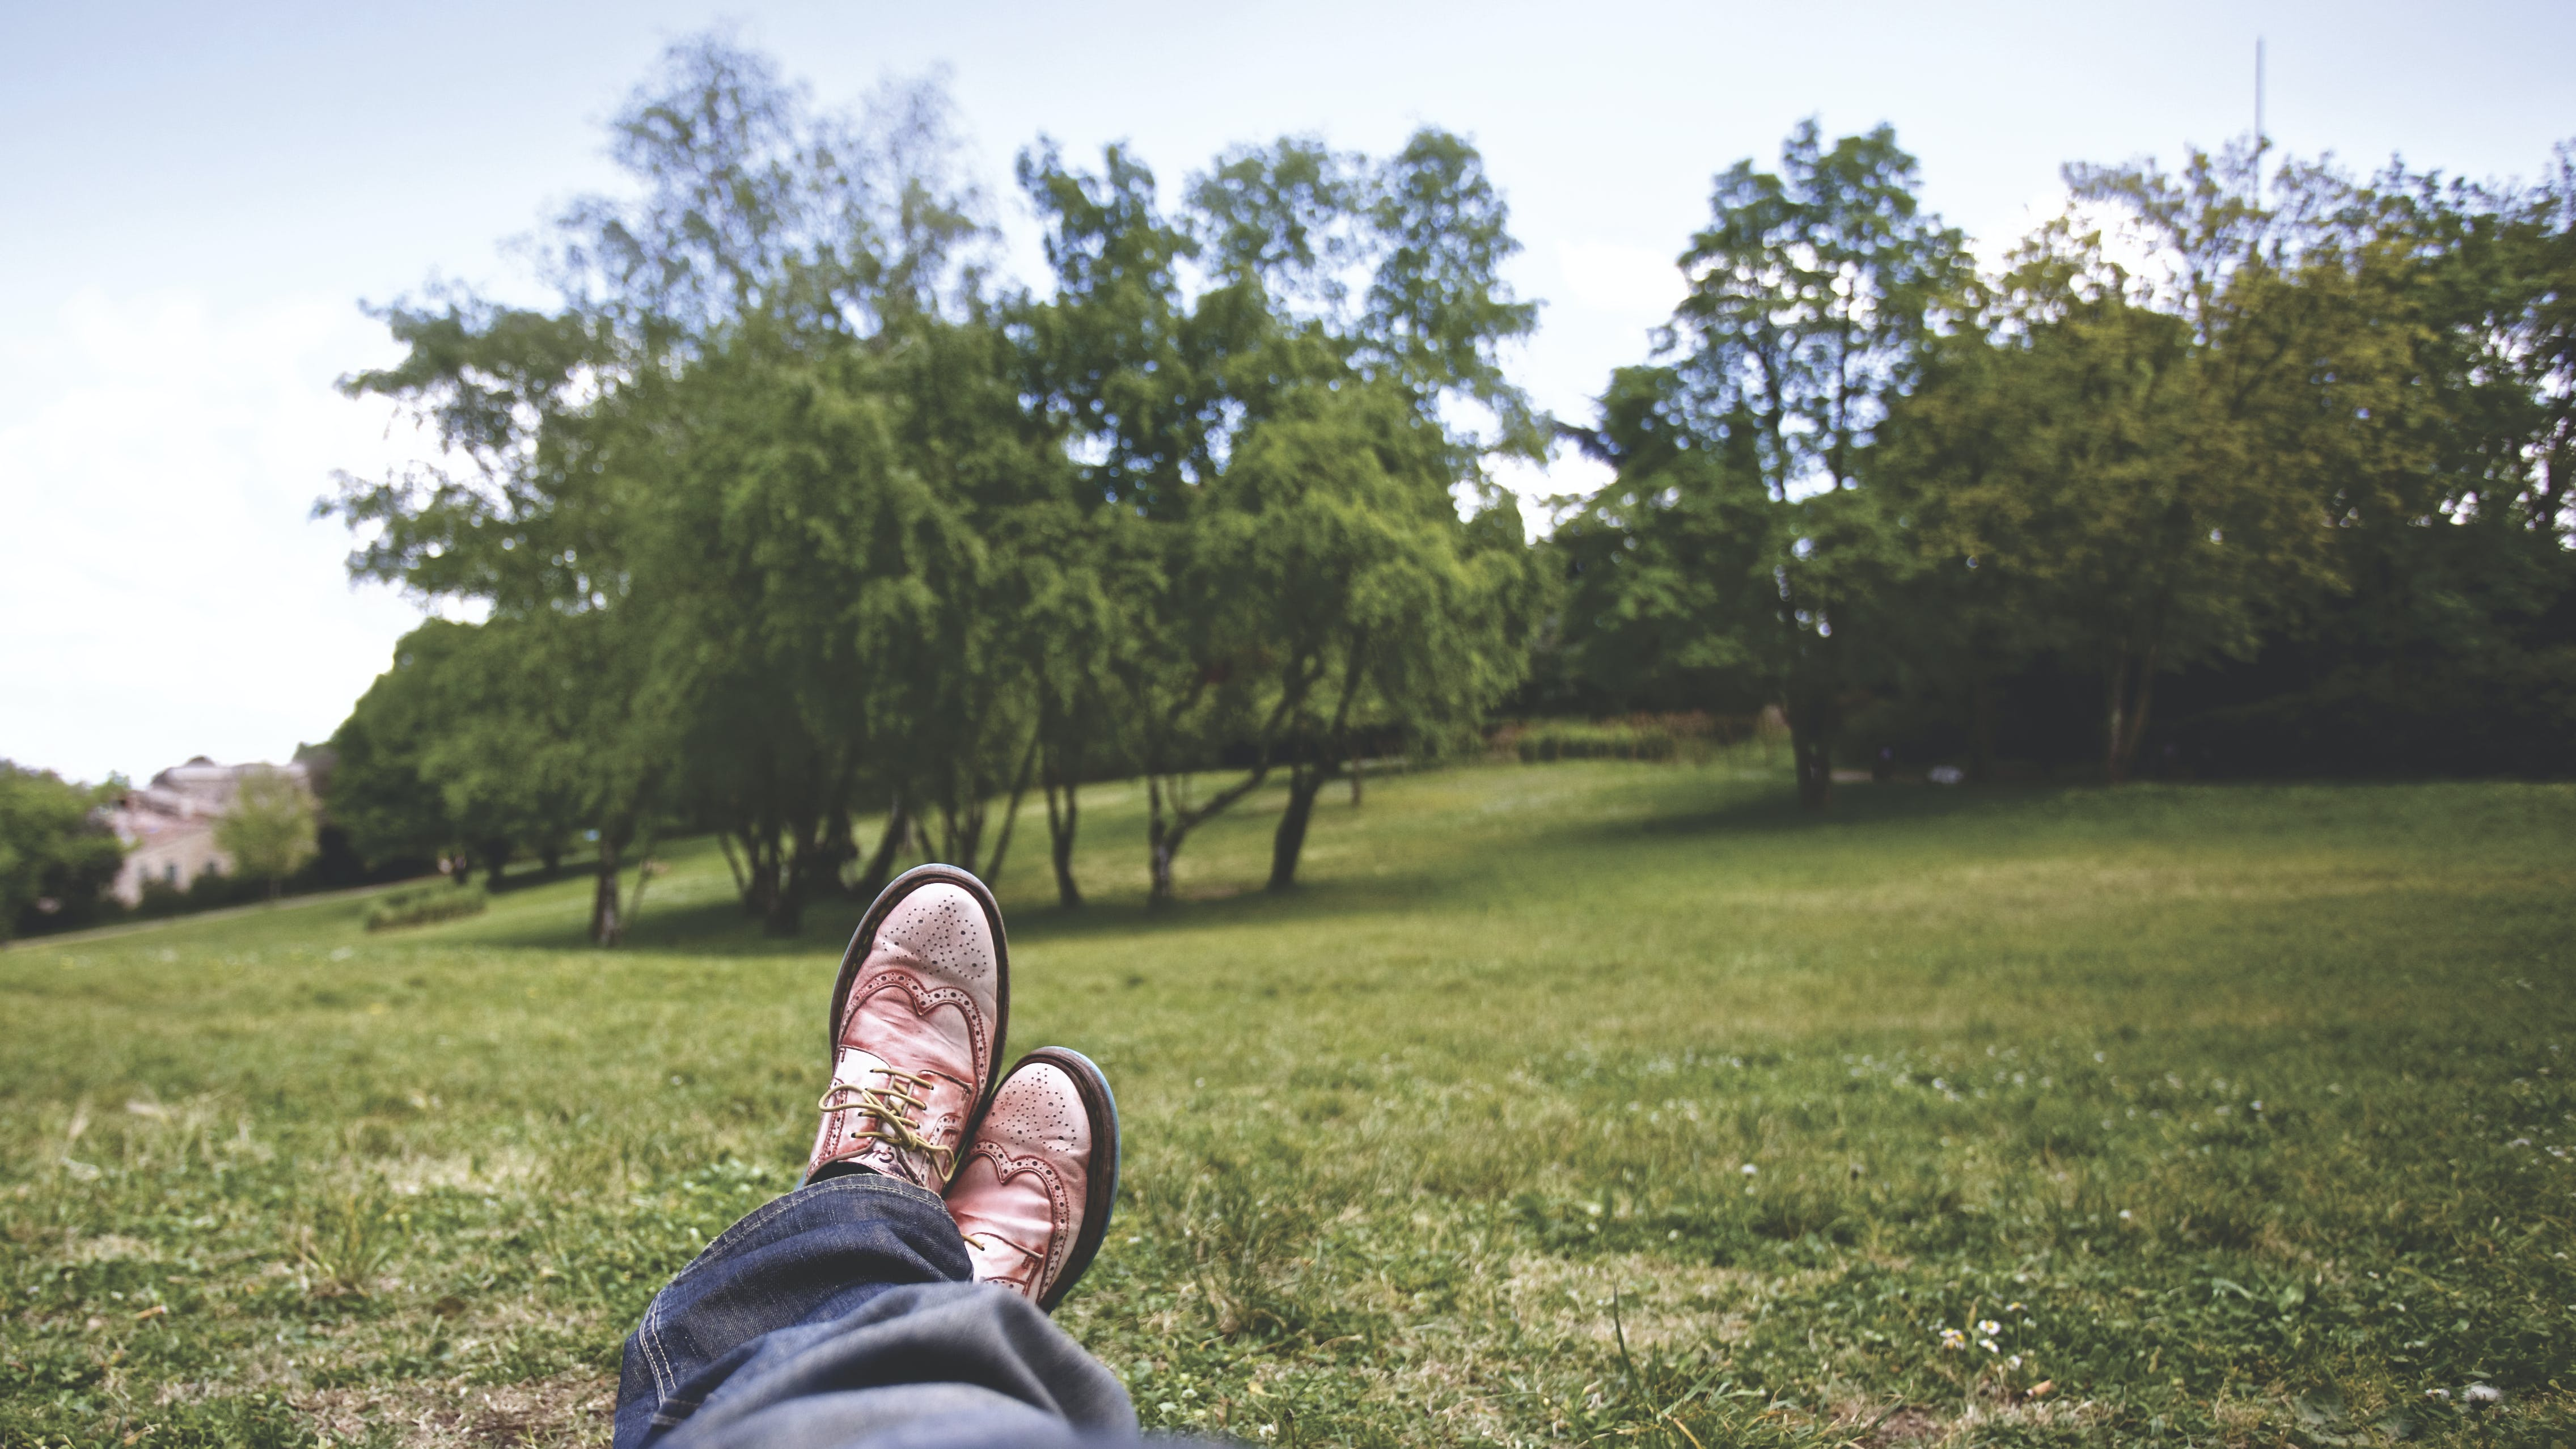 Person Lying on Grass Field Near Trees Under White Clouds during Daytime